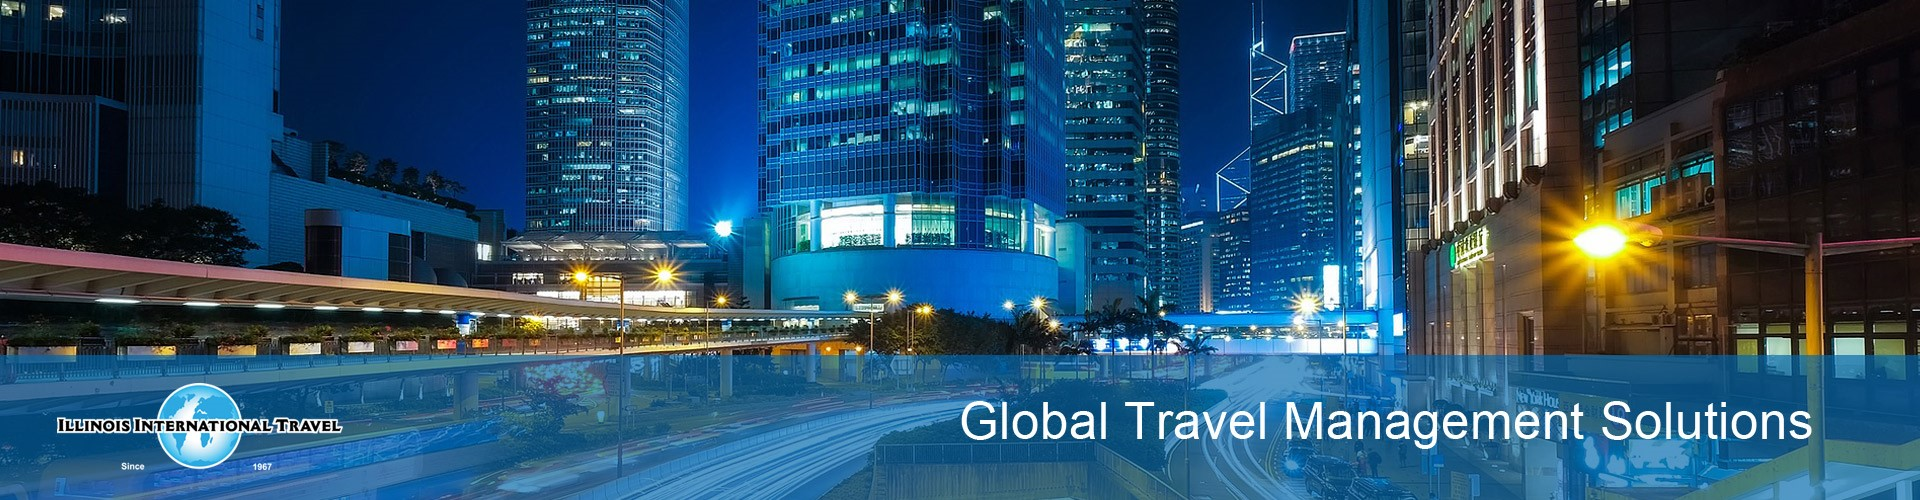 corporate travel solutions near me corporate travel management